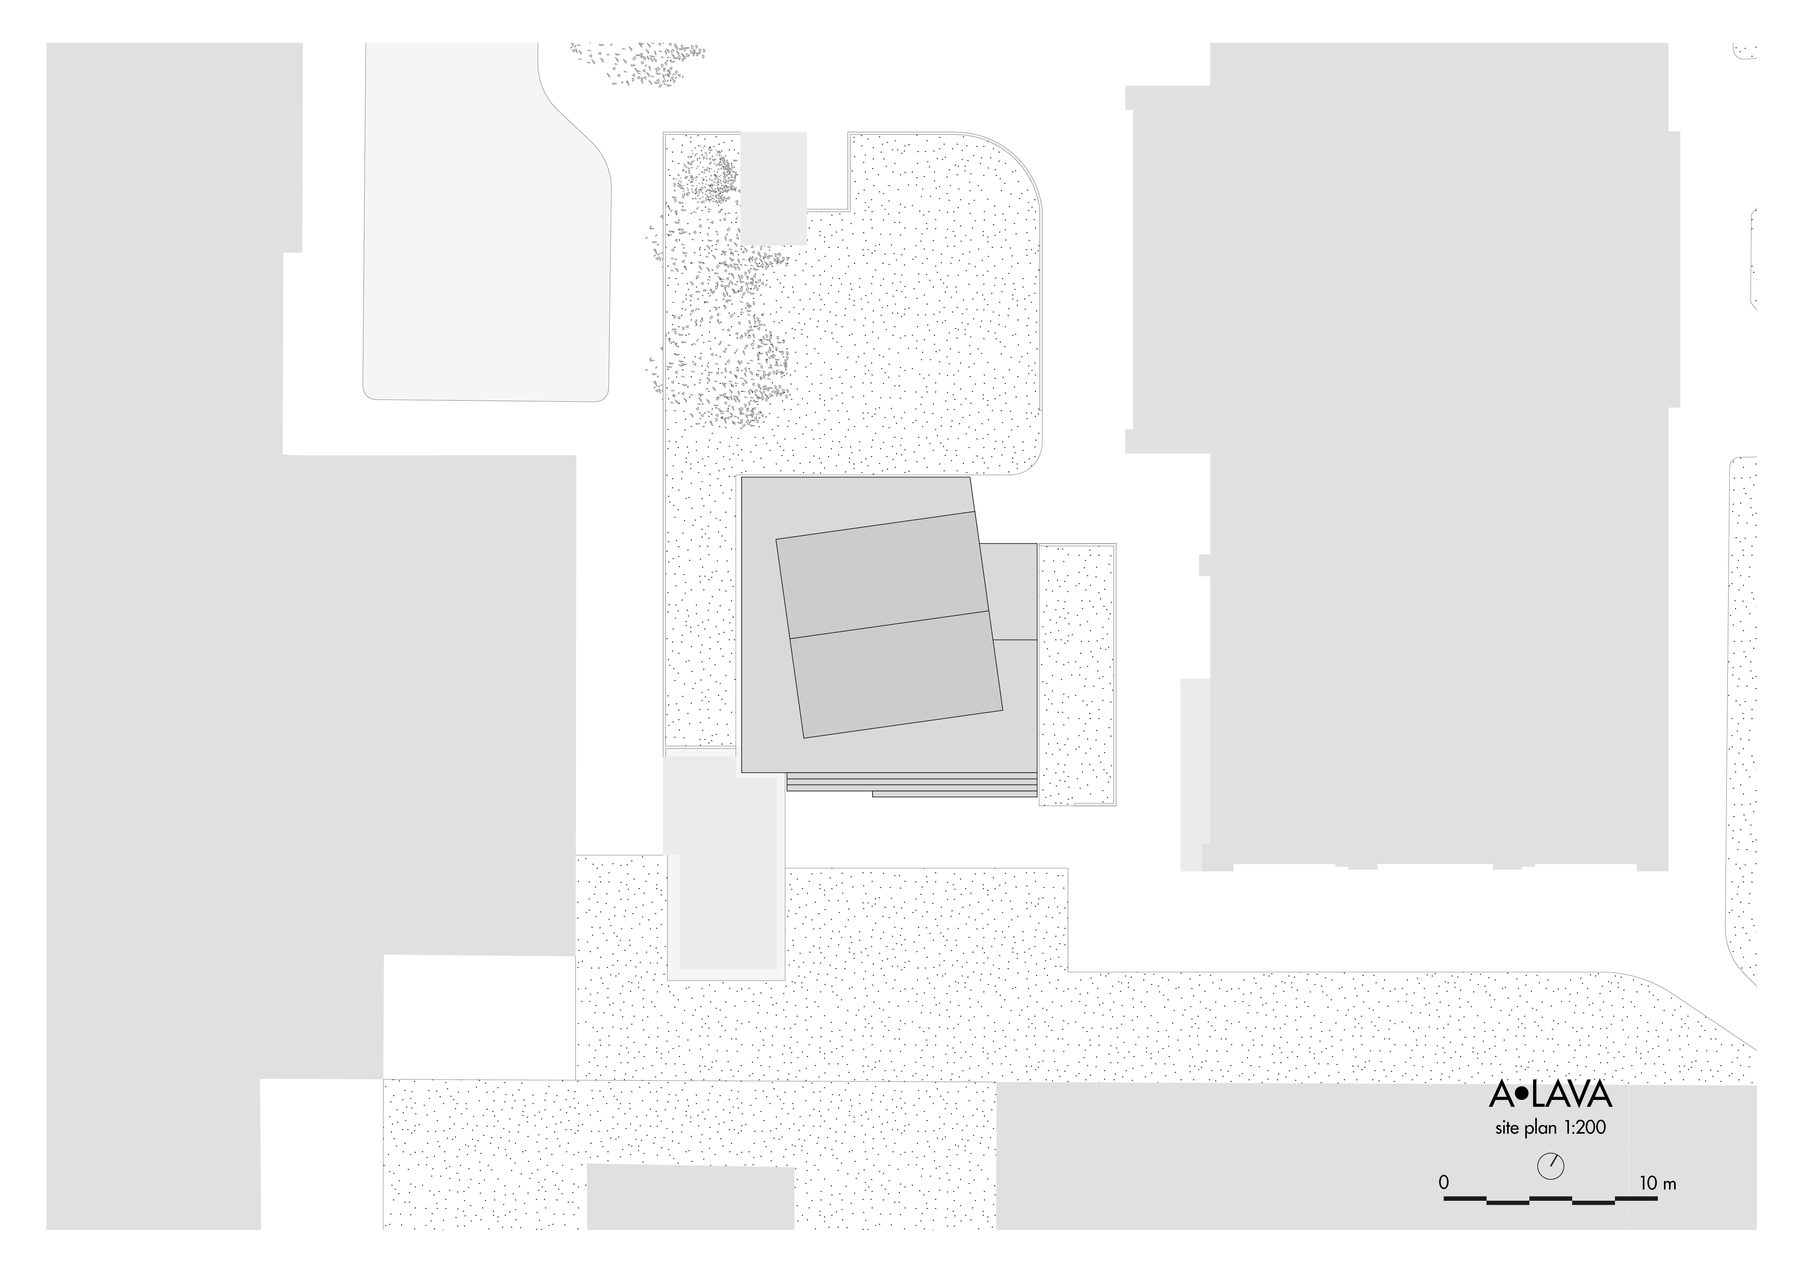 Top view drawing of the site of the A•LAVA summer theatre, Wood Program